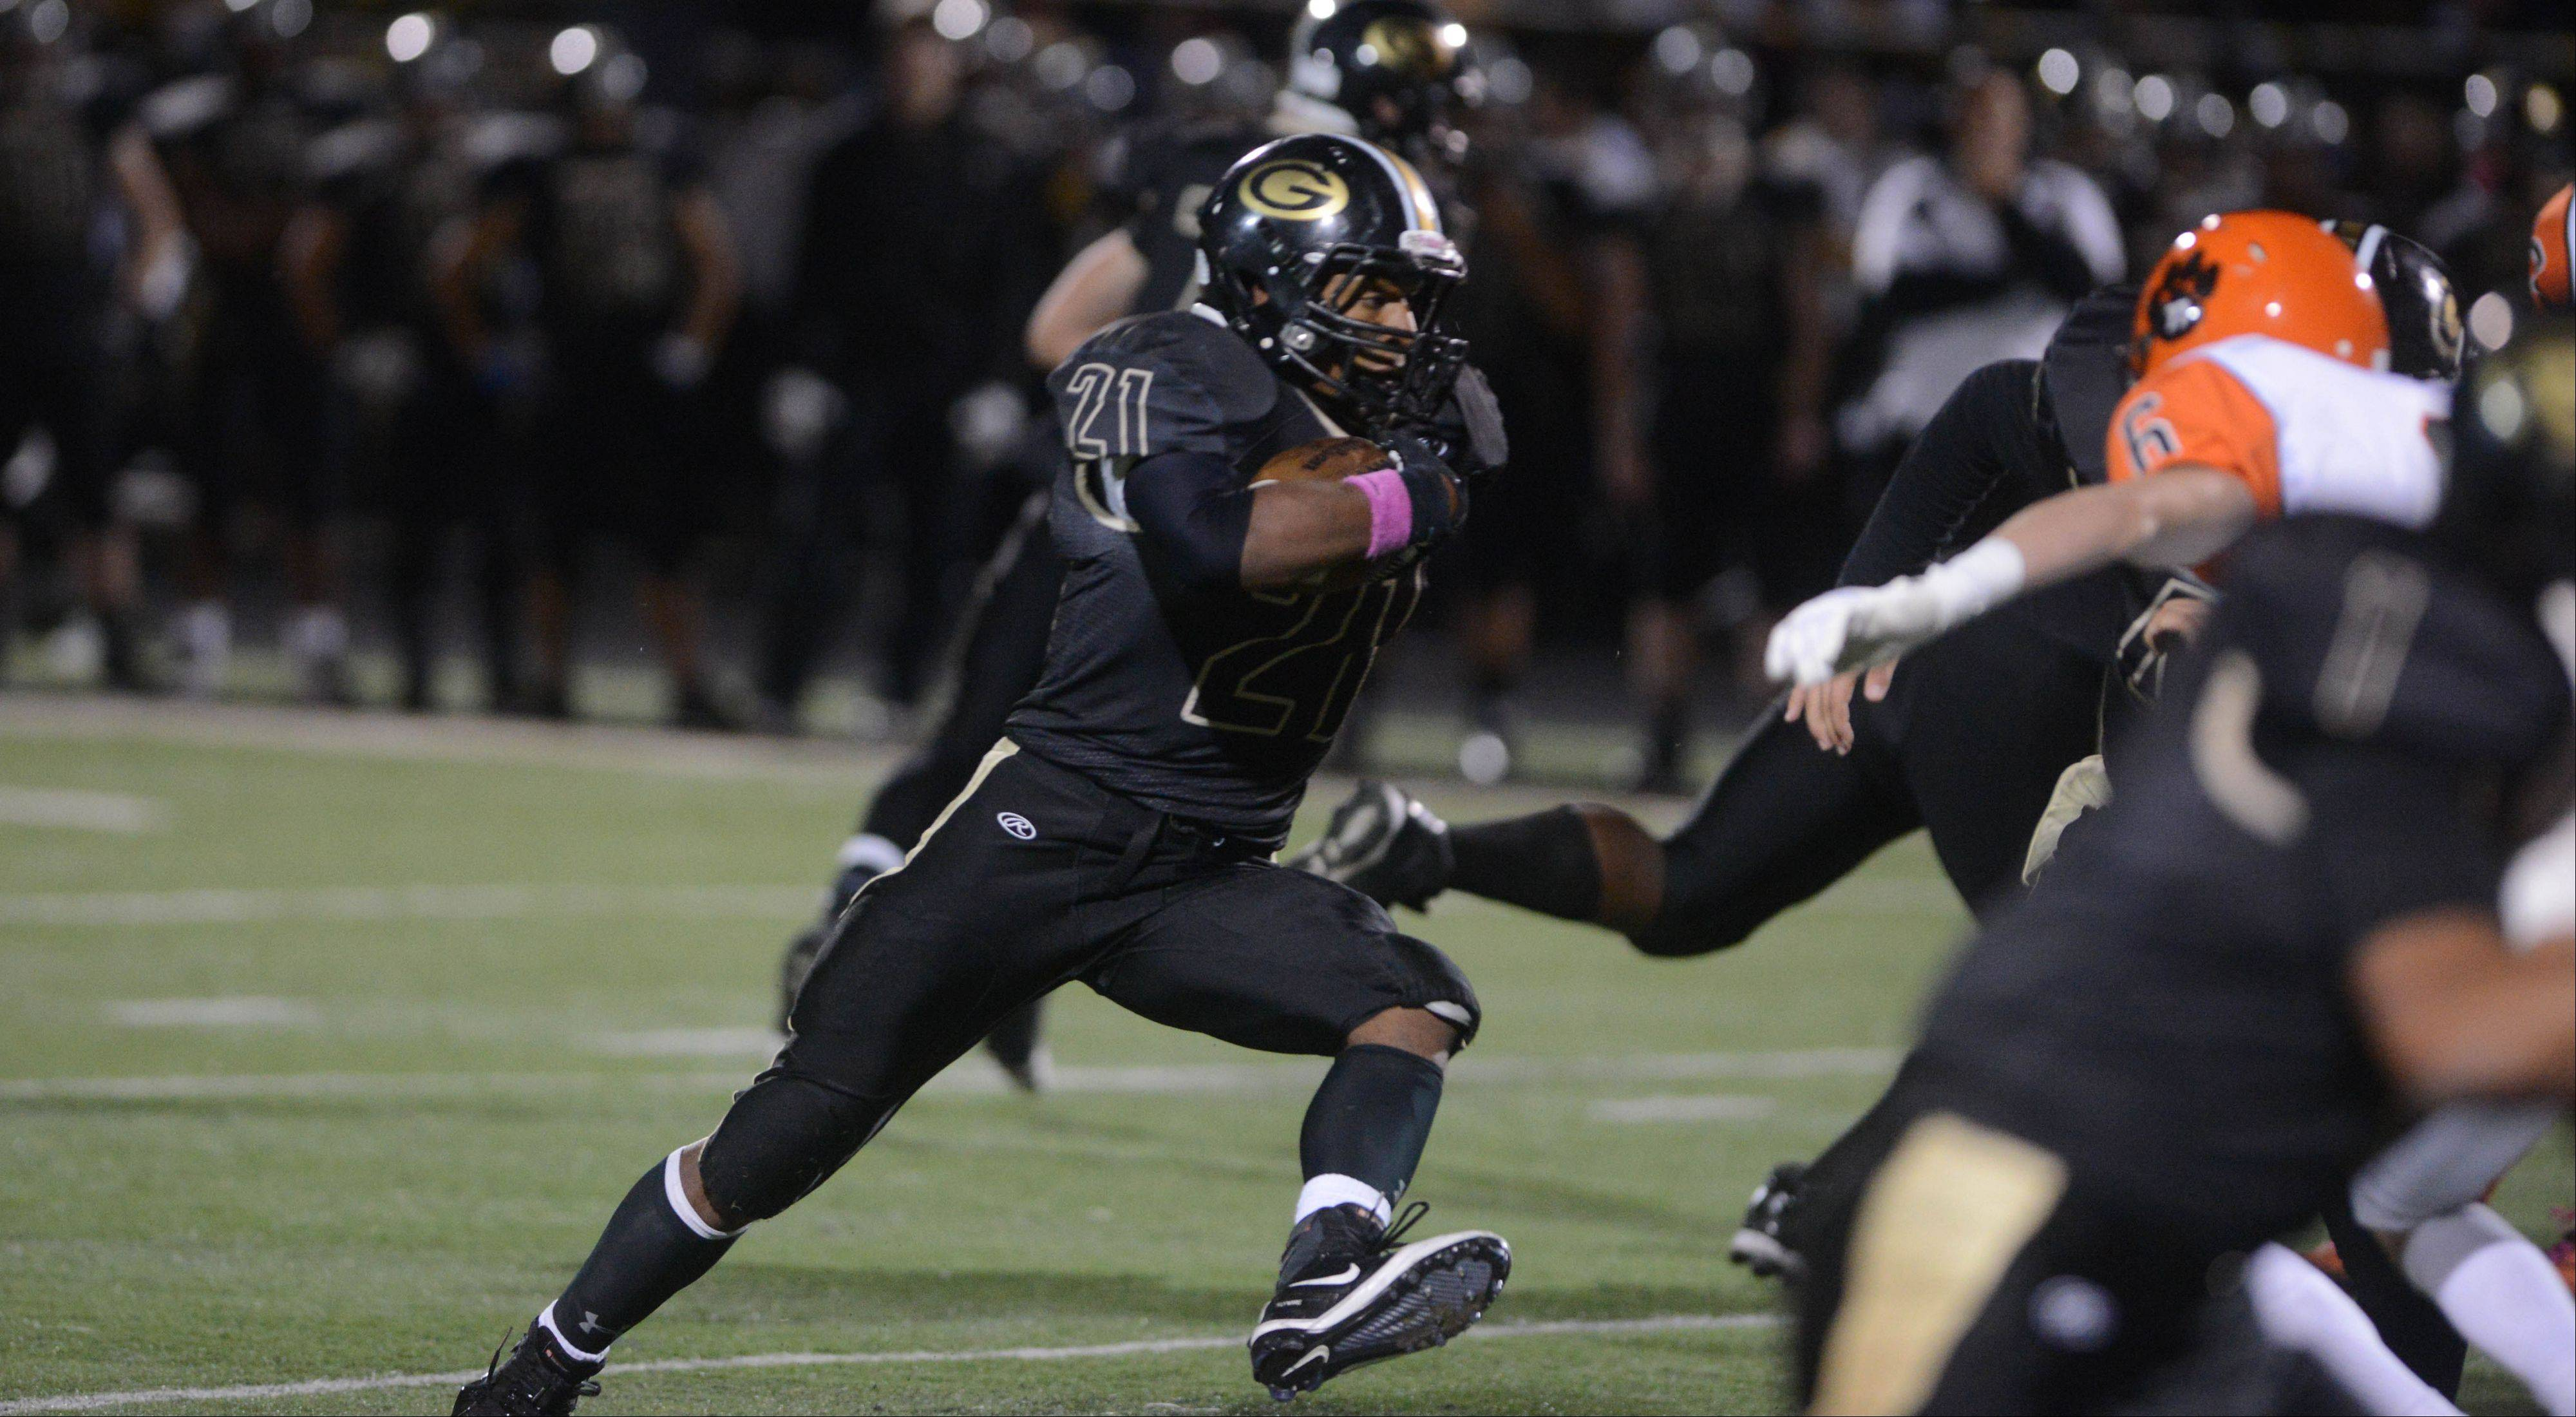 Justin Jackson of Glenbard North looks for running room.